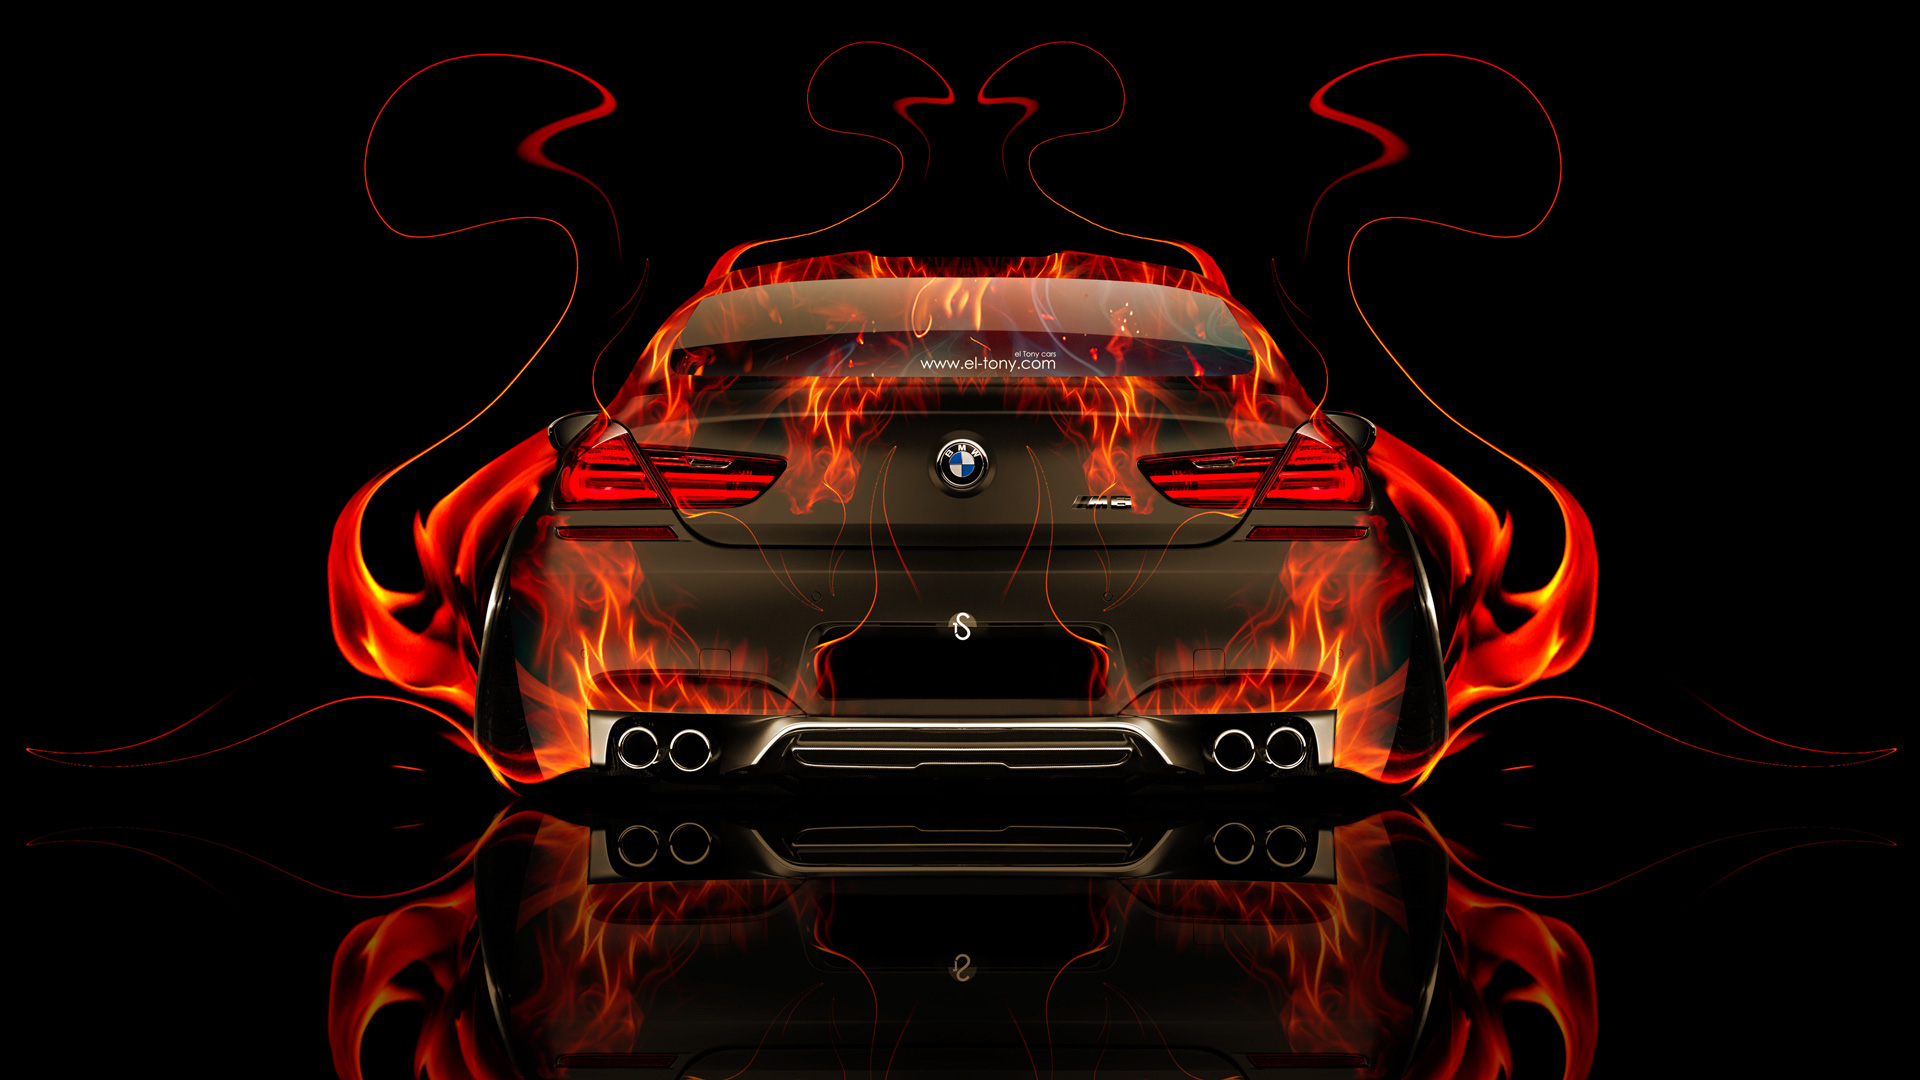 Bon BMW M6 Back Fire Abstract Car 2014 HD